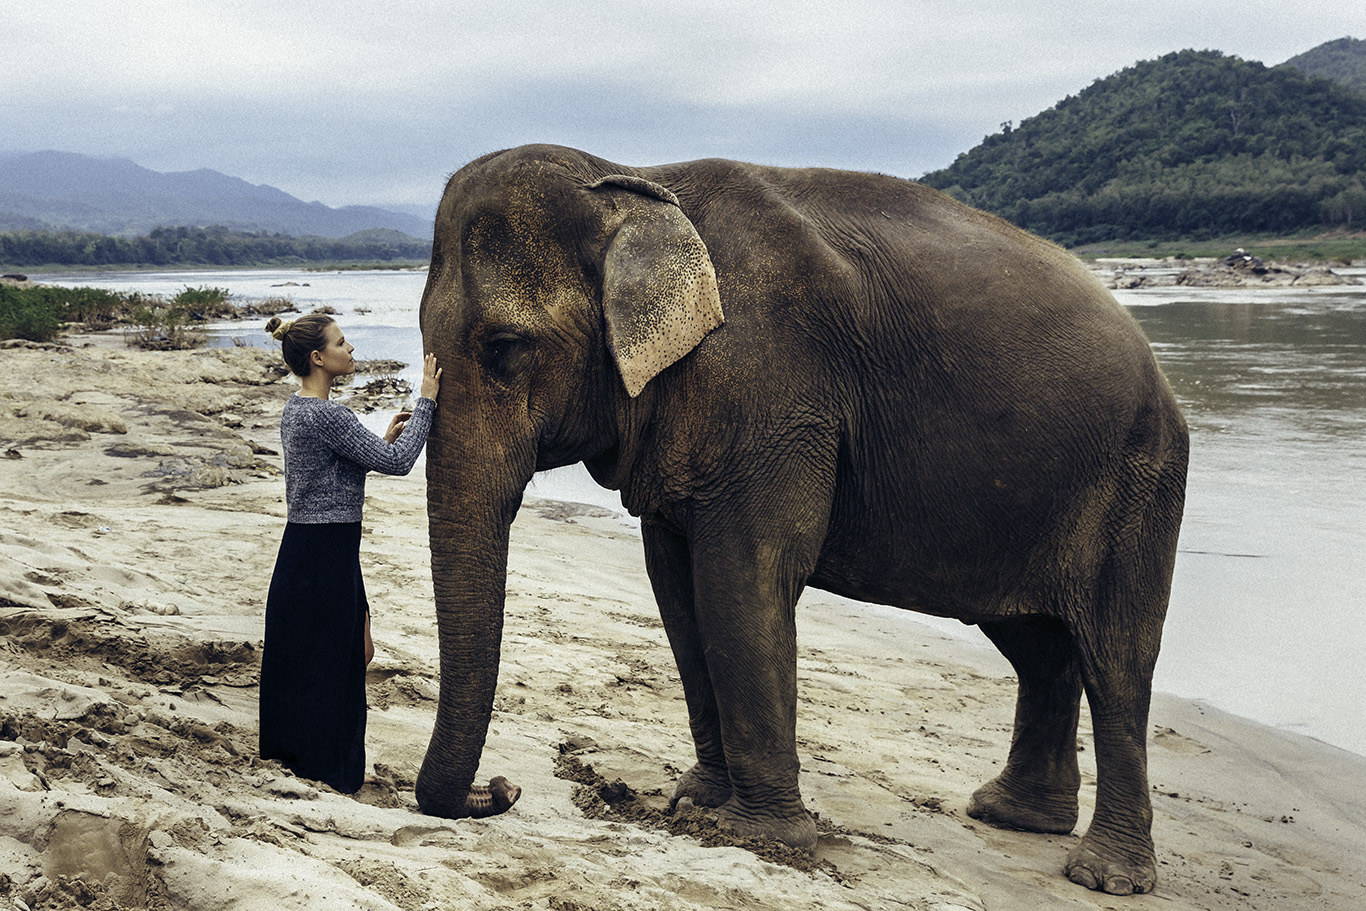 Pictured: Melissa Findley with Moukhao, a 38 year old female Asian elephant who was rescued from the logging industry in Laos.